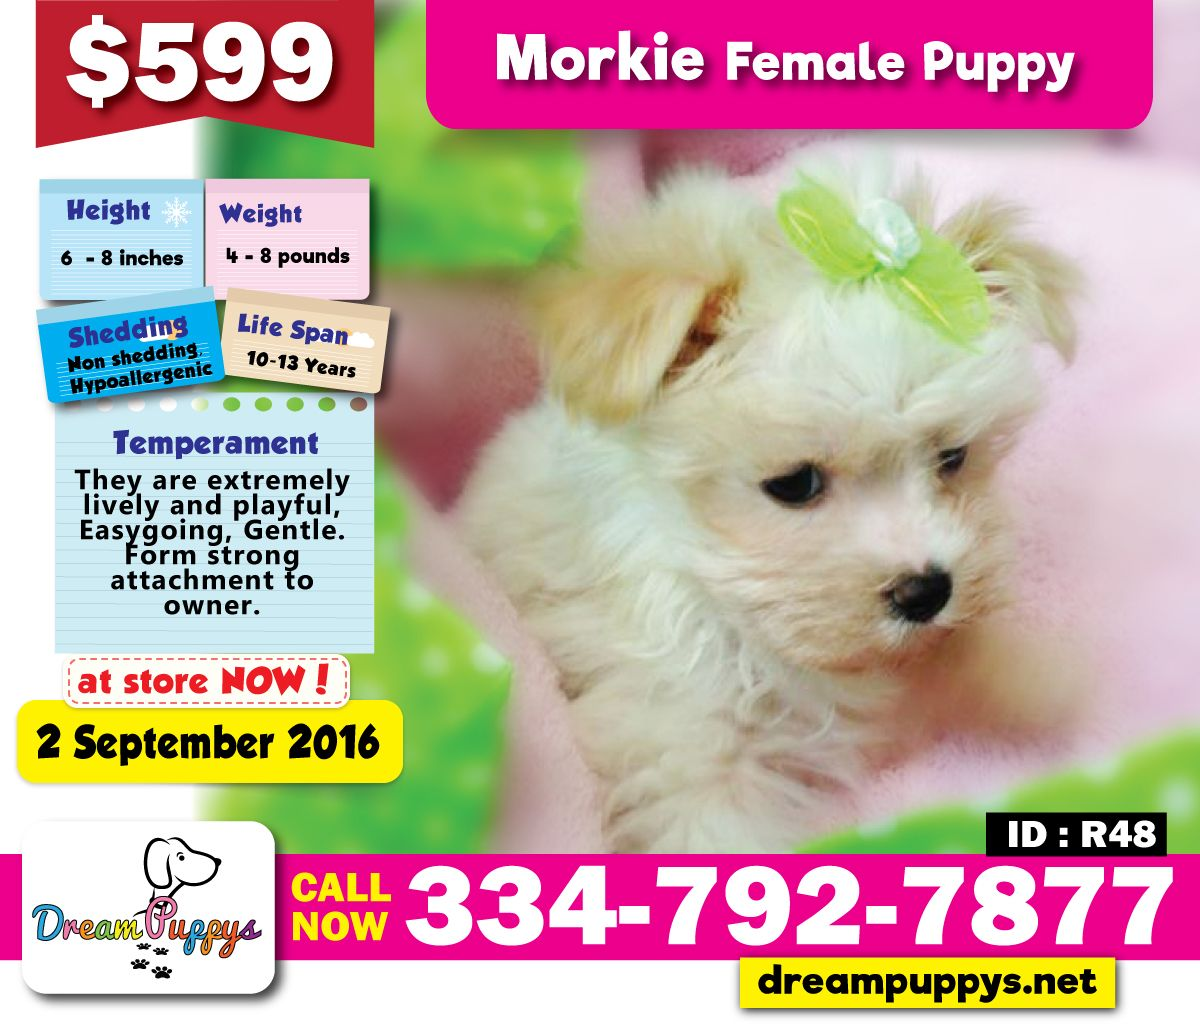 Morkie Female Puppy Available In Store Now 02 September 2016 Www